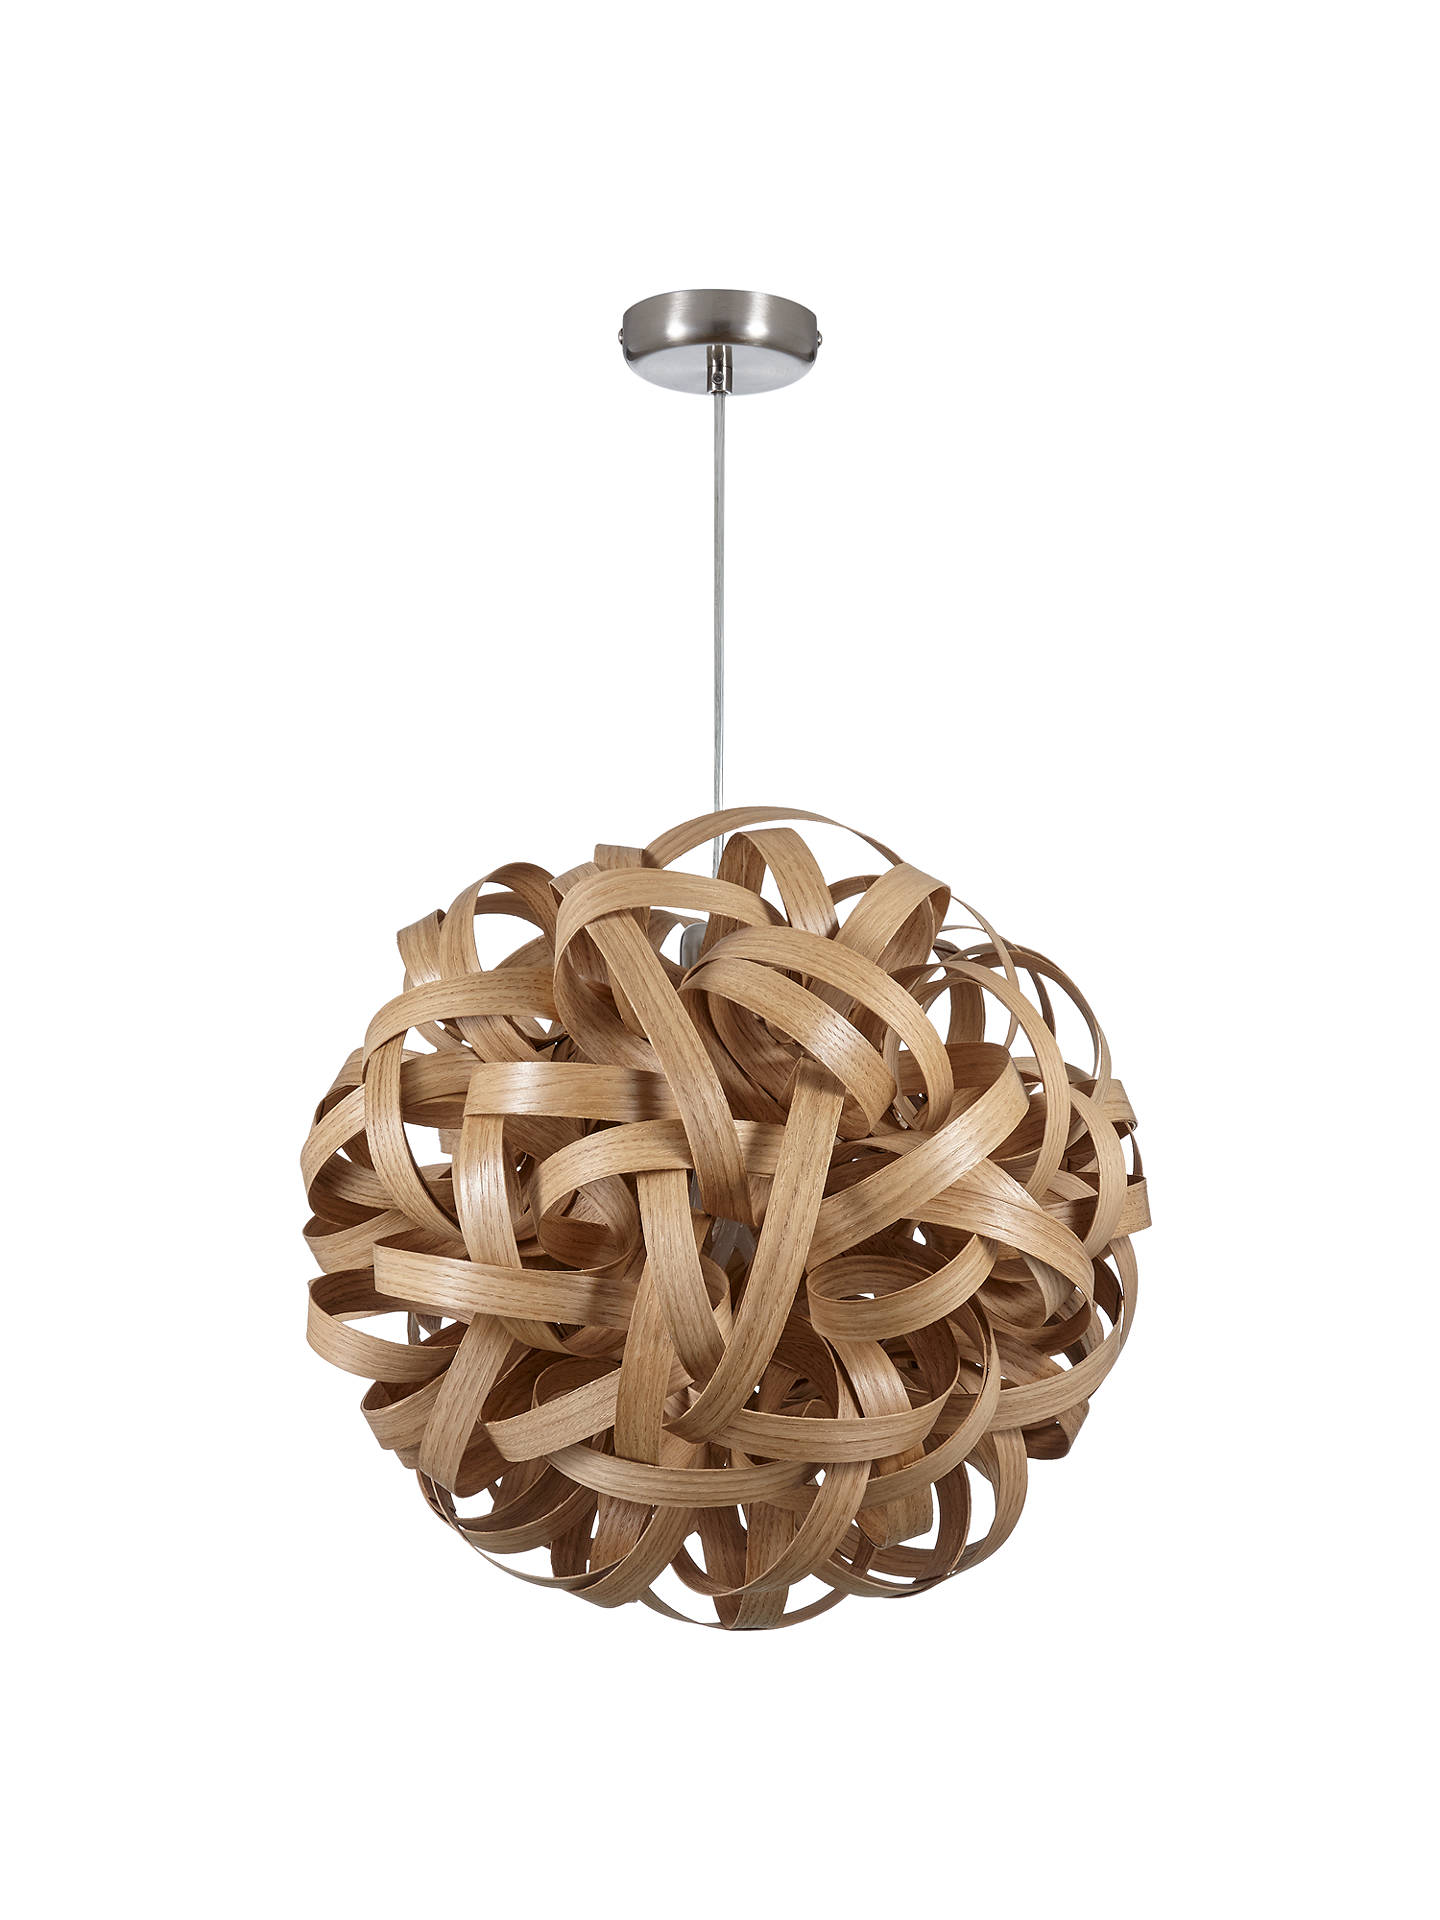 Buy Tom Raffield No. 1 Pendant Light, Oak Online at johnlewis.com